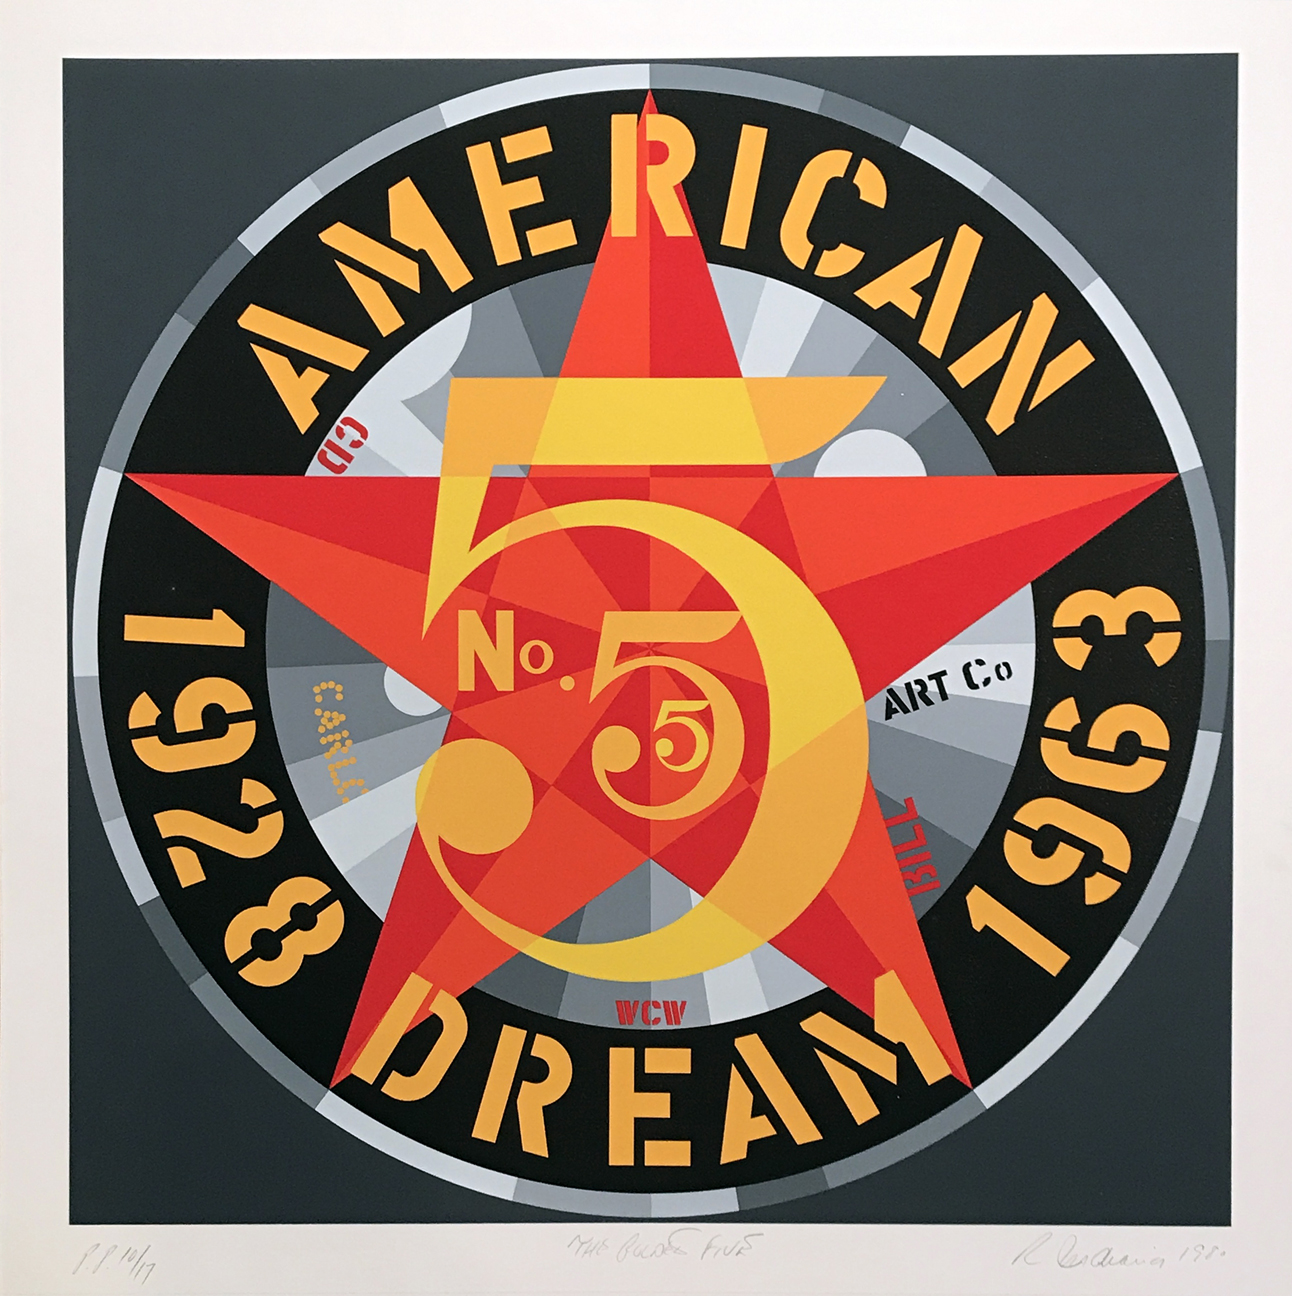 12.	Robert Indiana. The Golden Five, 1980. Serigraph in colors on five sheets of Fabriano 100% rag paper, ed. P.P. 10/17, 26 ¾ x 26 ¾ in.